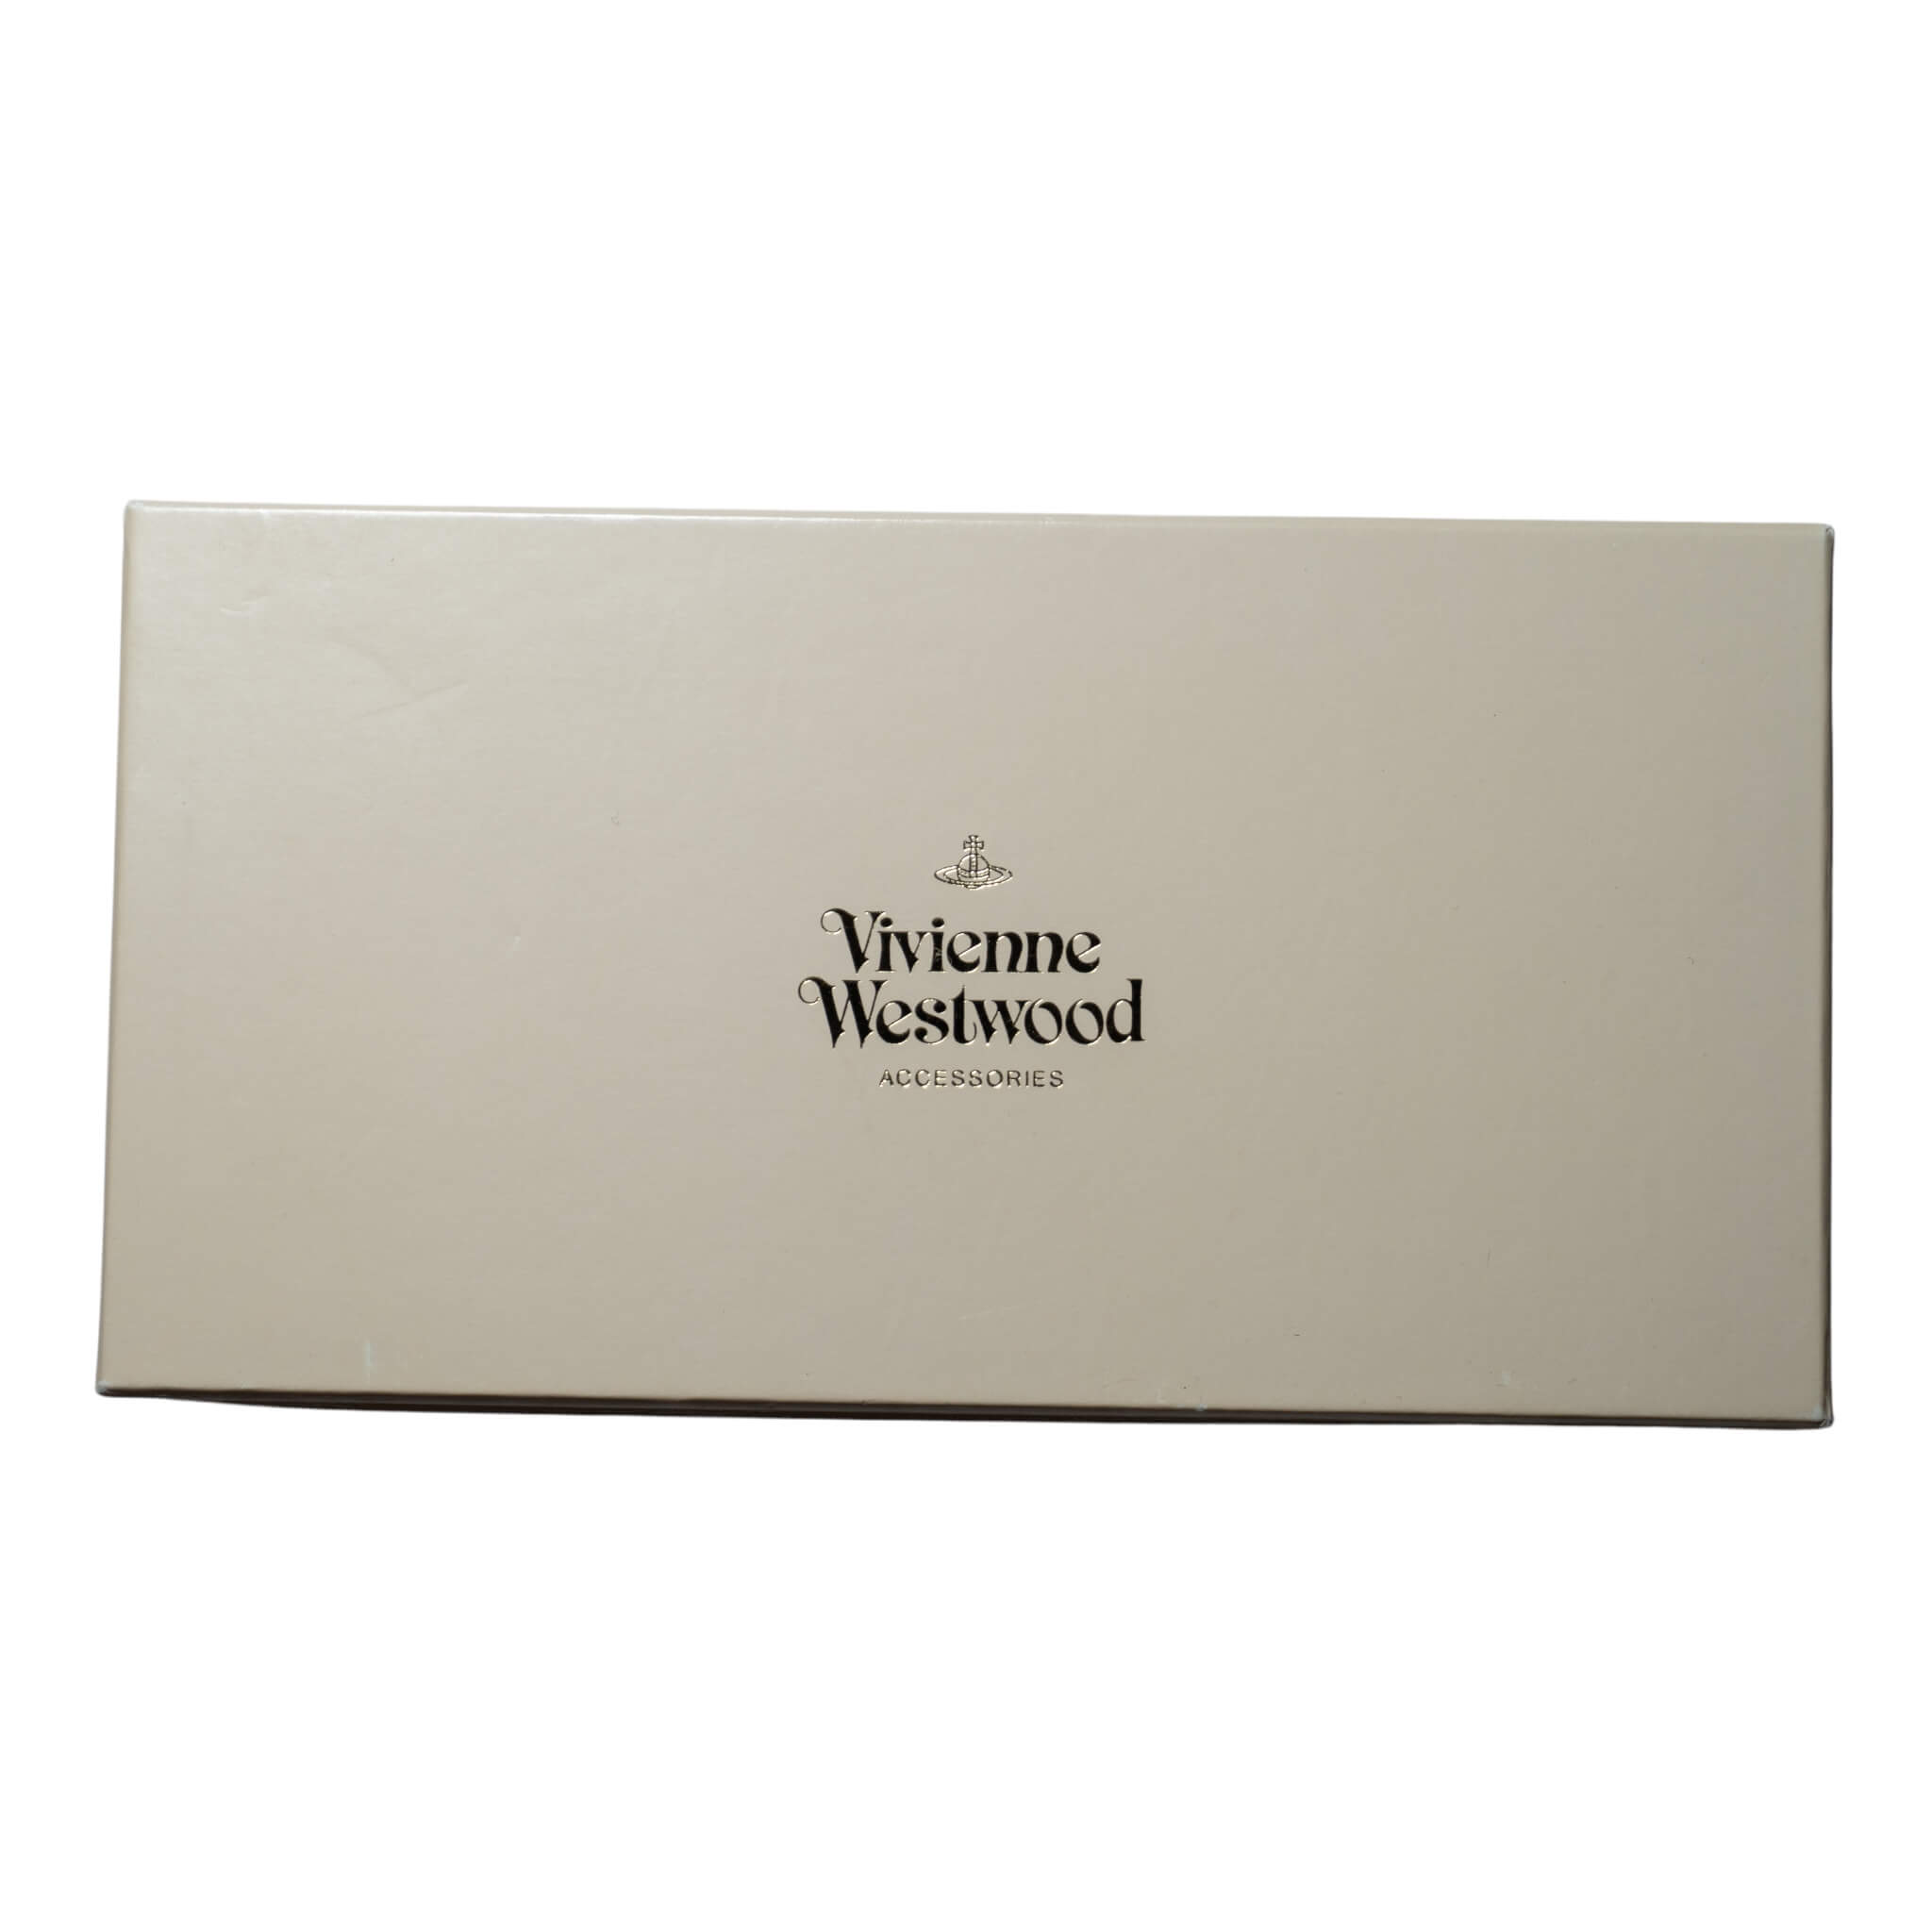 The most precious wallet. This untouched gem will fit everything you need without being obnoxious. Hell, even wear it as a clutch! It's too pretty to be hidden away in your bag.